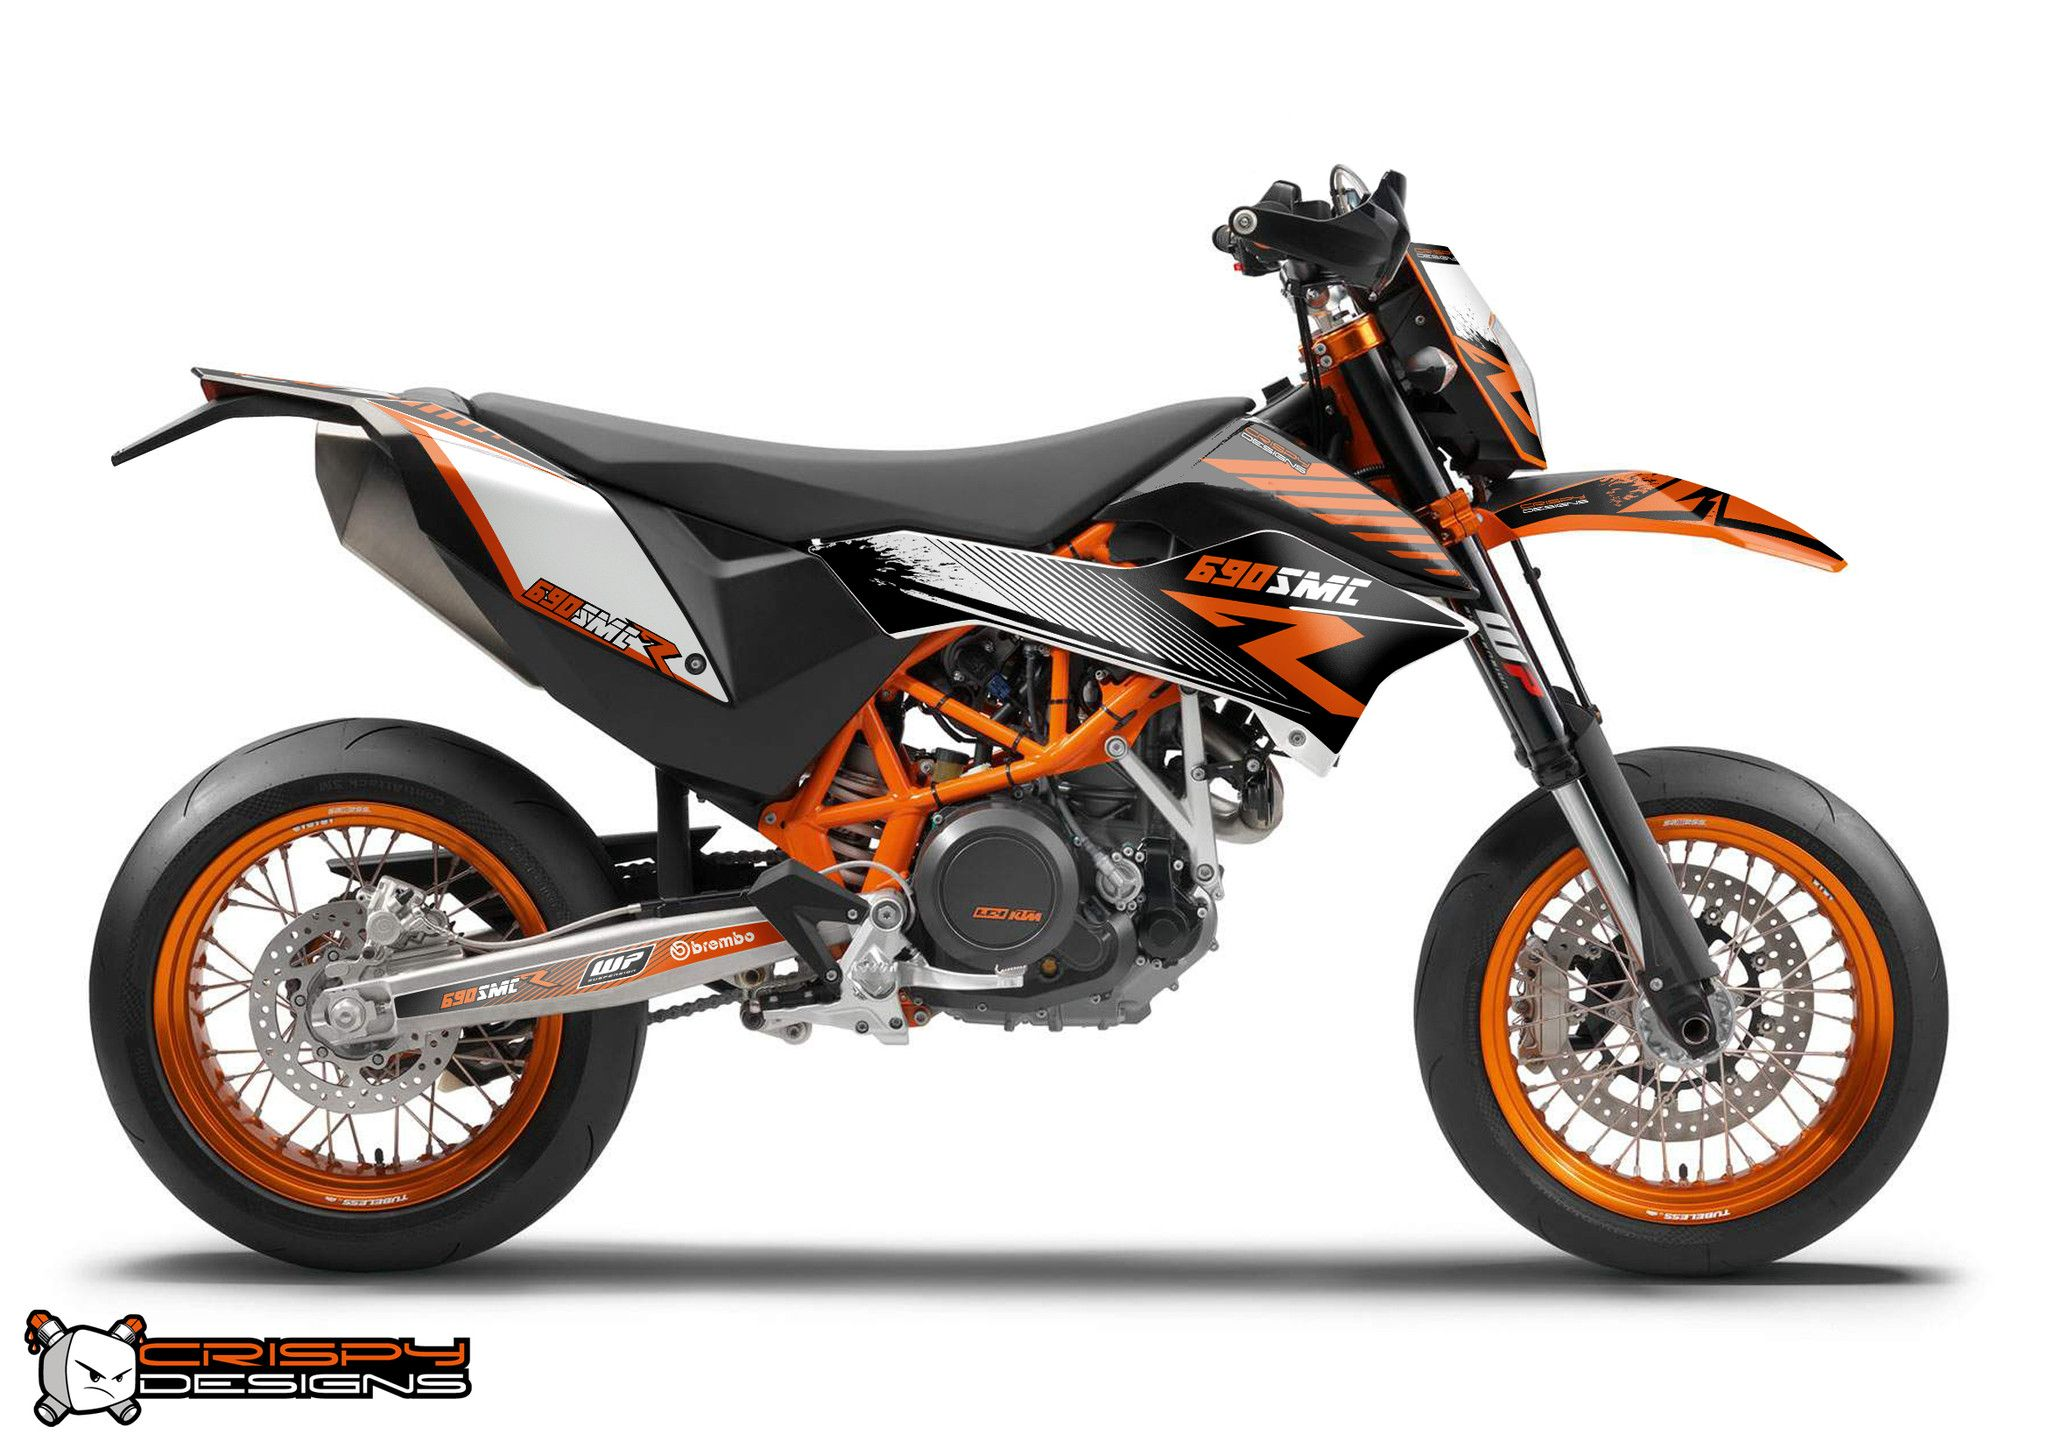 ktm 690 smc r 39 r line 39 decal kit custom race number ktm 690 wheels and ktm duke. Black Bedroom Furniture Sets. Home Design Ideas